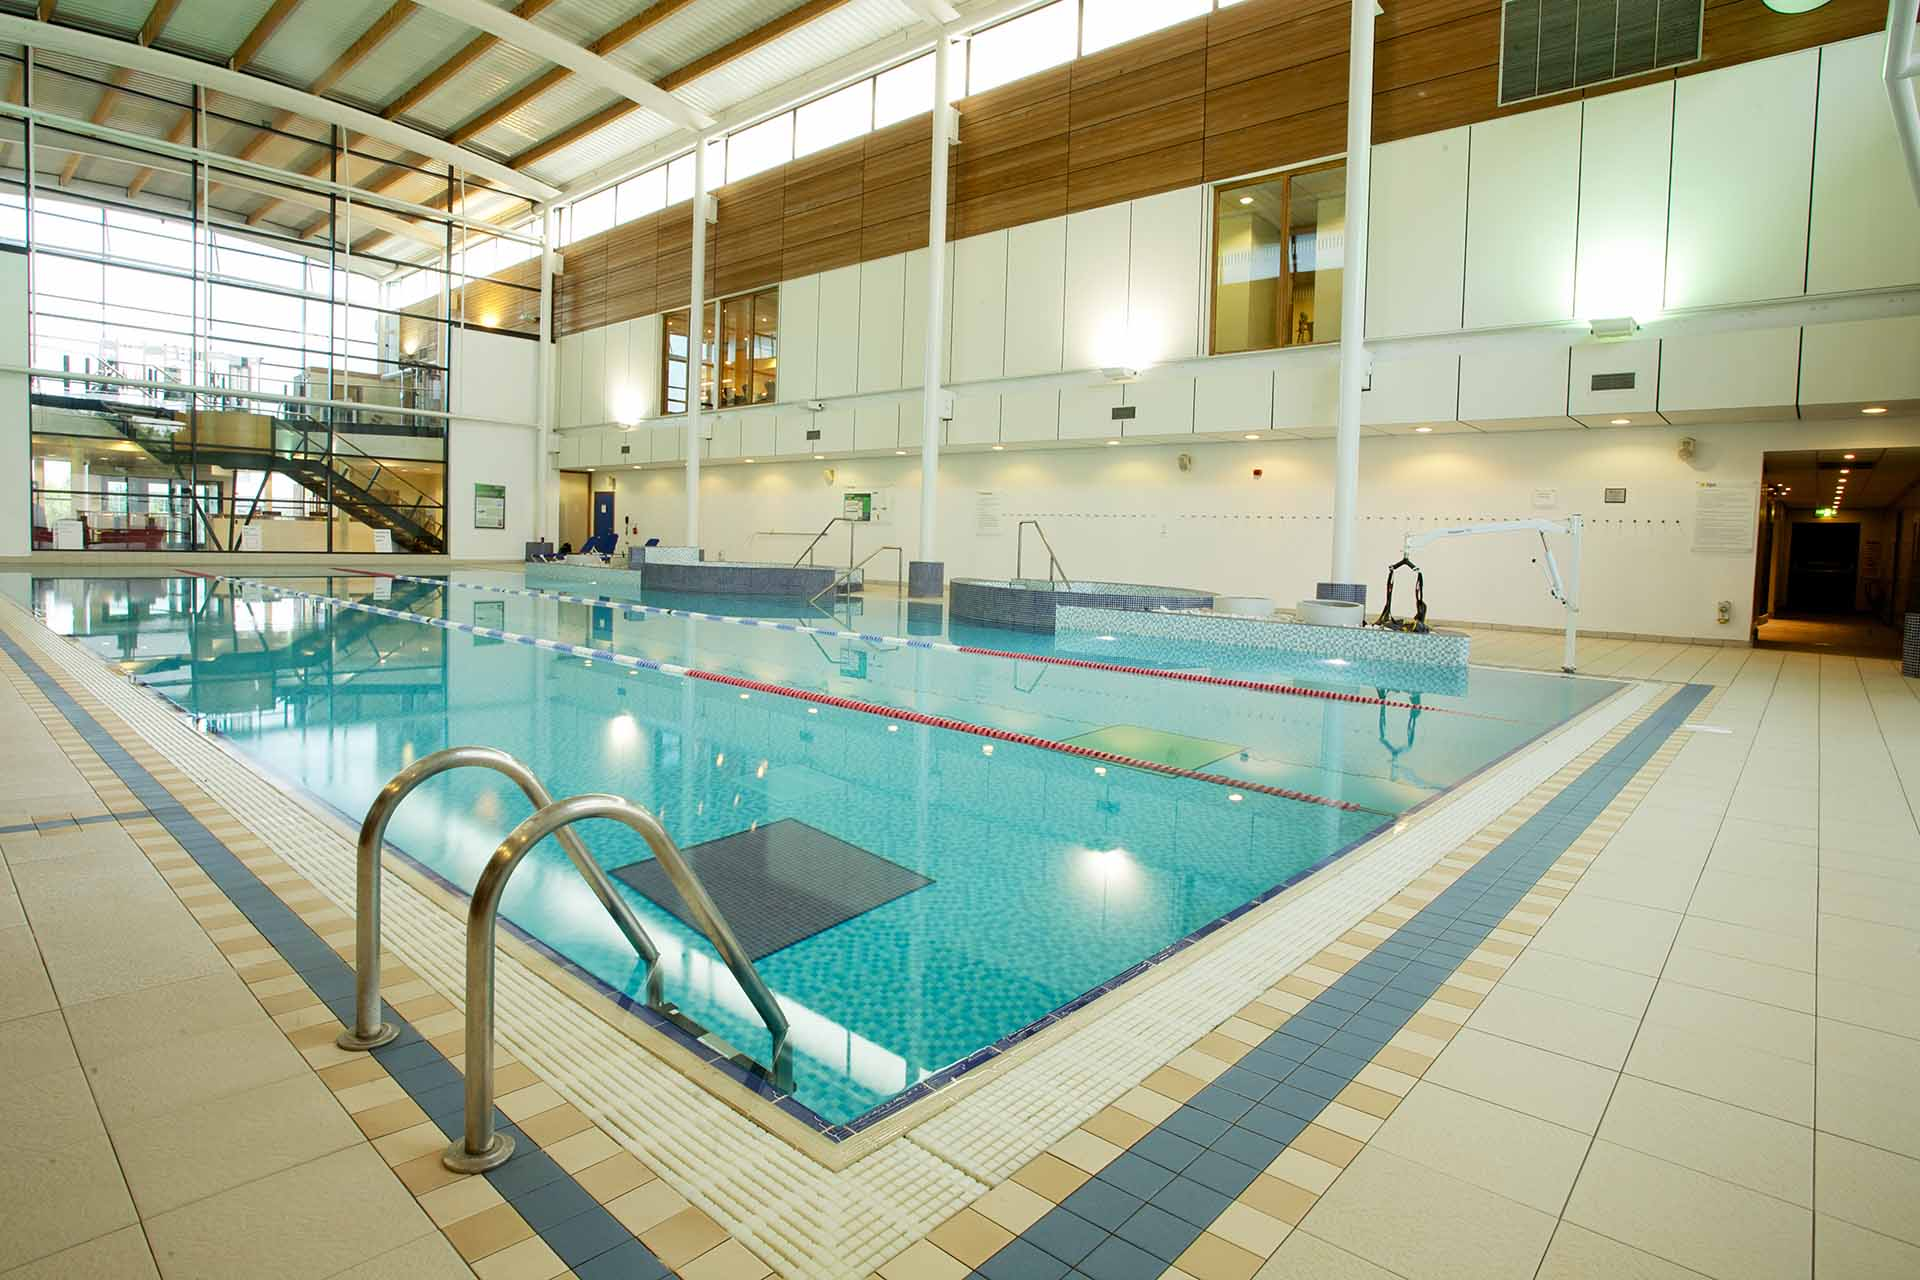 Leicester Fitness & Wellbeing Gym - Swimming pool